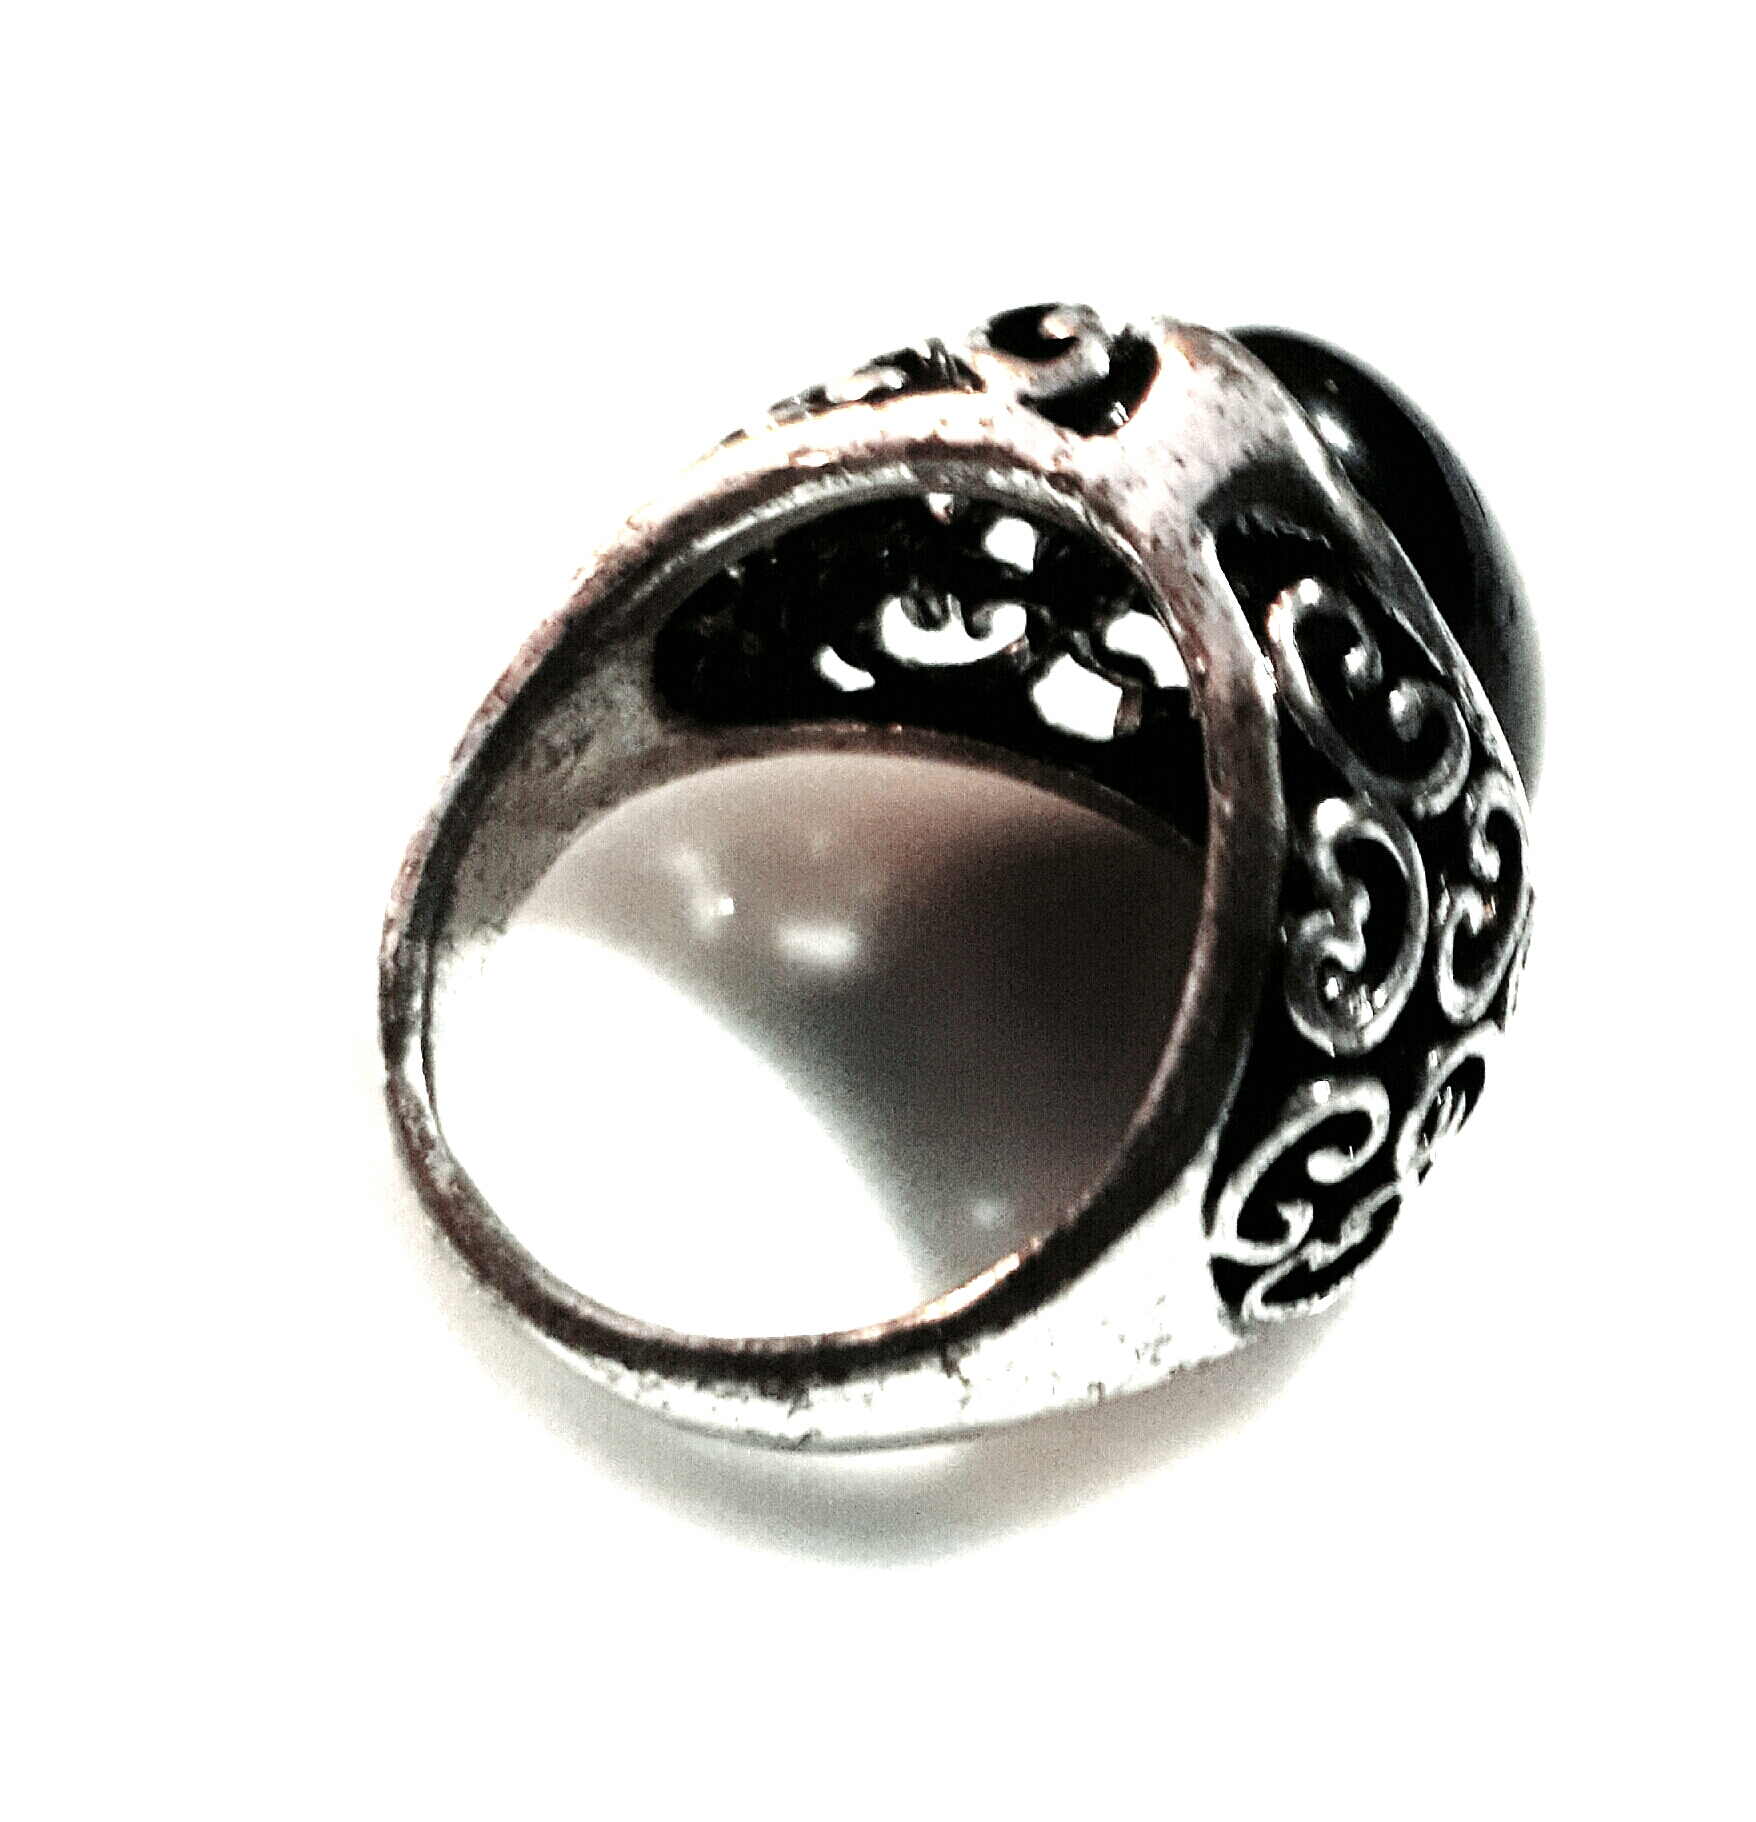 rebelsmarket_goth_old_silver_metal_antique_look_black_oval_engraved_design_ring_size_sml_rings_2.jpg